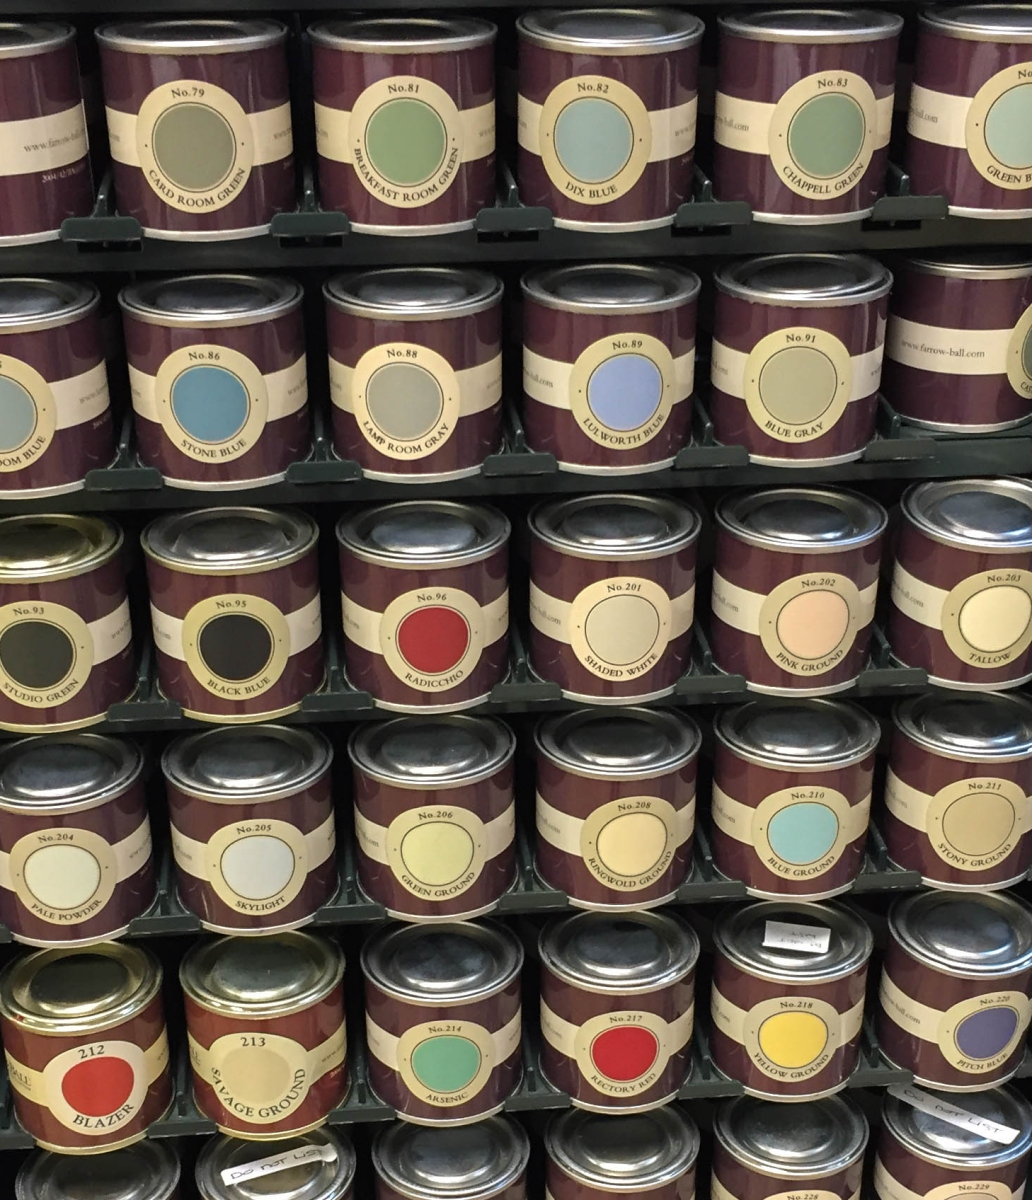 A wall display of Farrow & Ball sample paint pots.